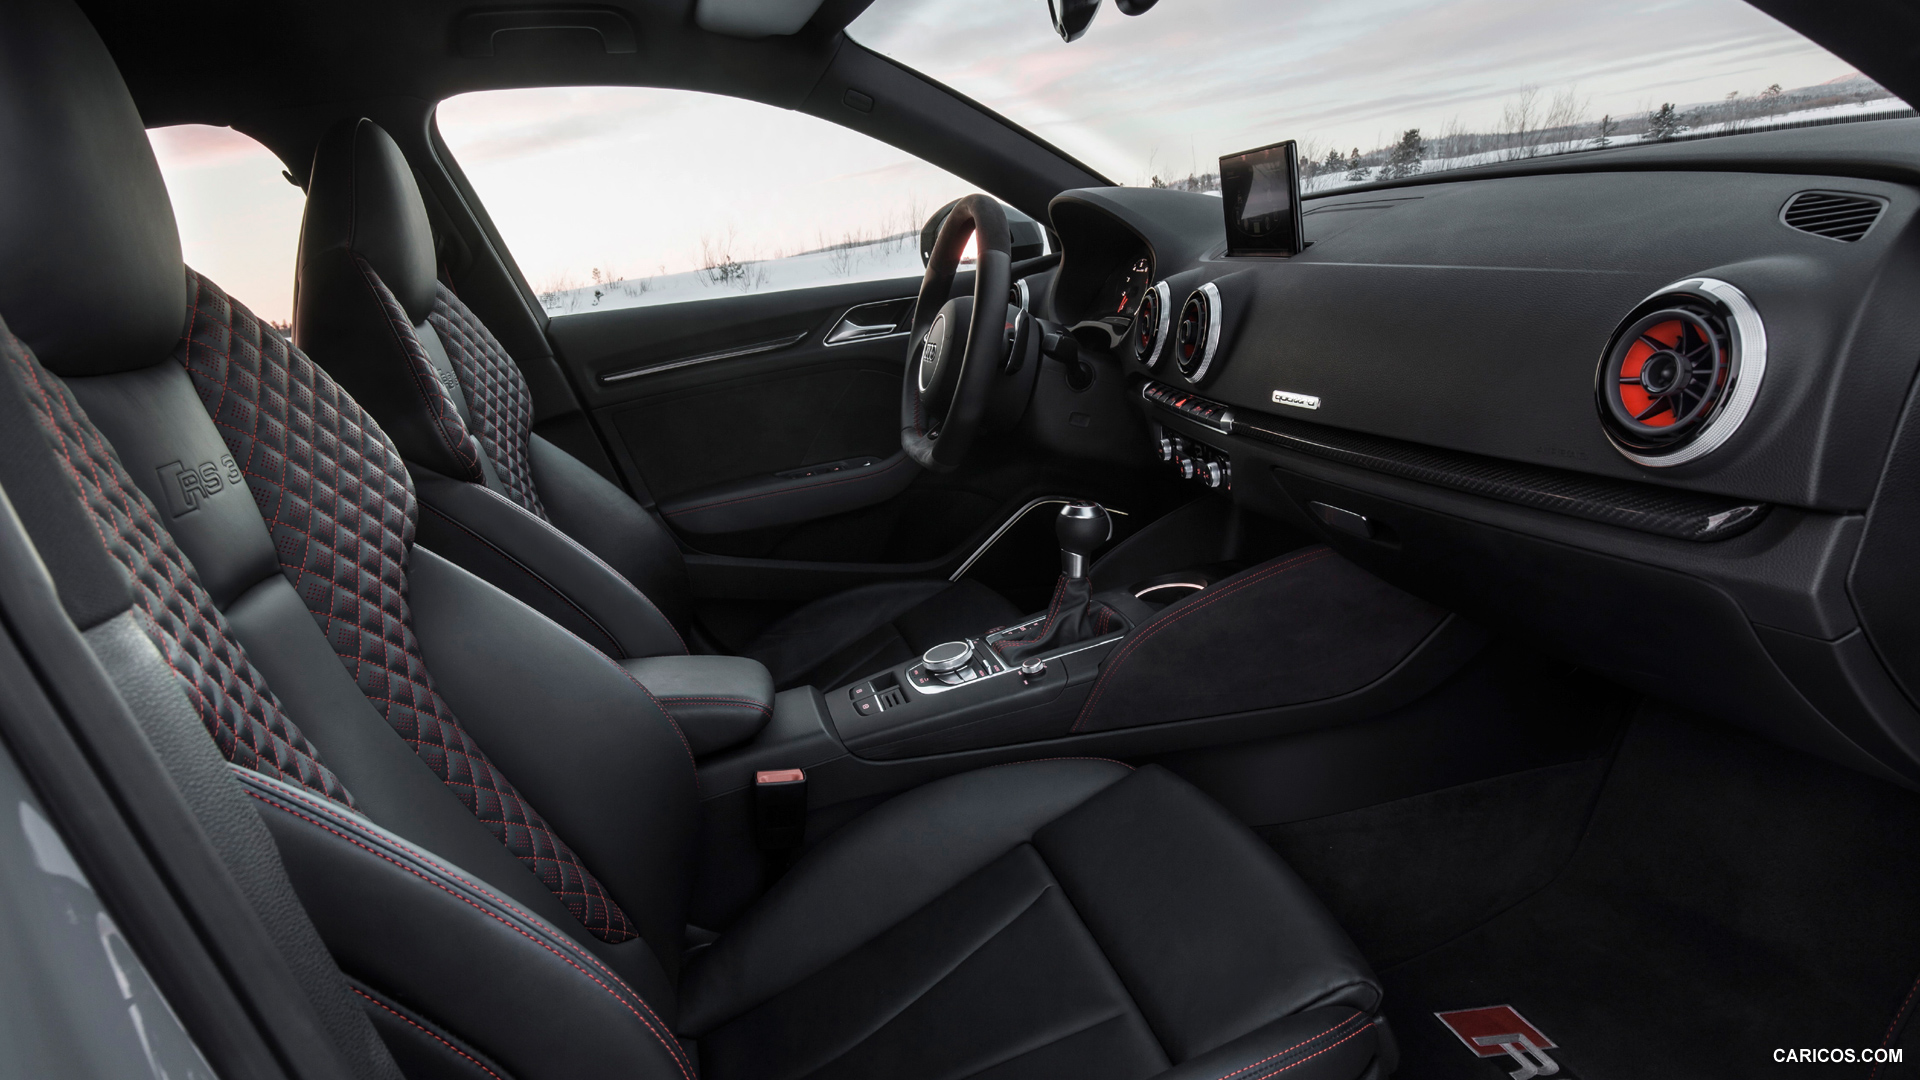 2016 Audi S3 Interior Wallpaper 1920x1080 3330